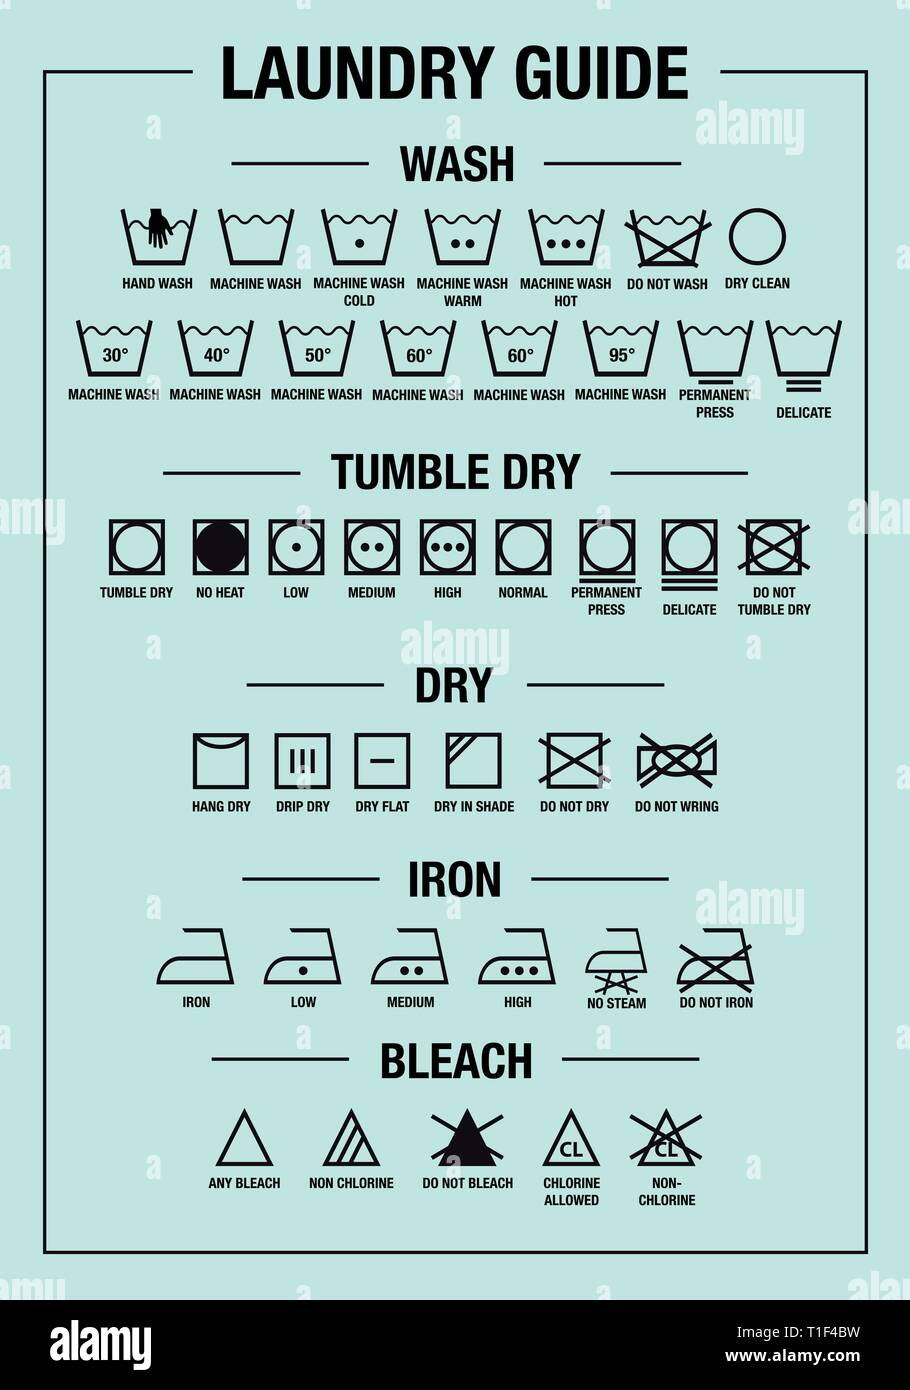 laundry guide art print and care signs, textile washing